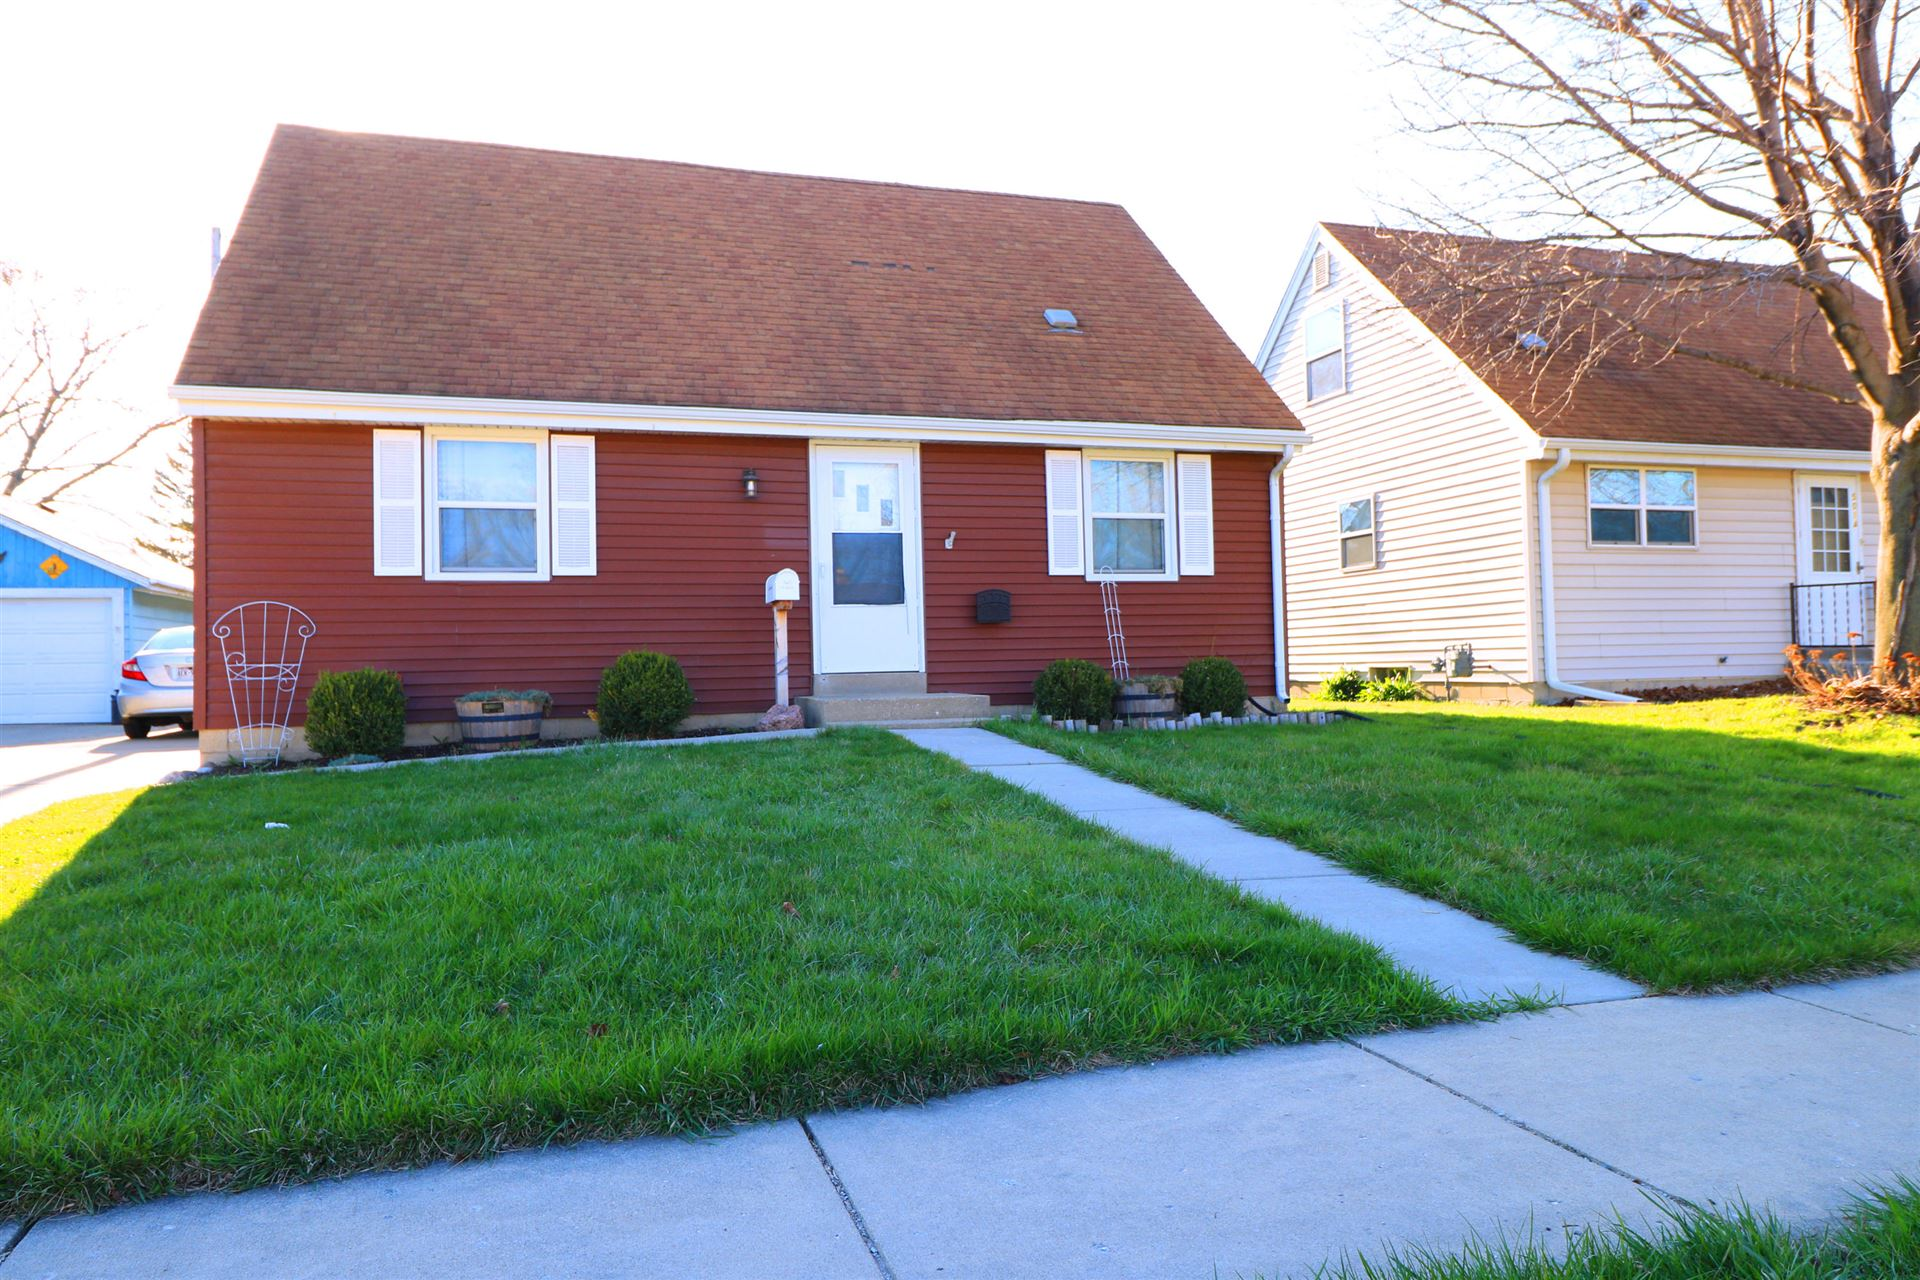 5018 39th Ave, Kenosha, WI 53144 - #: 1684830